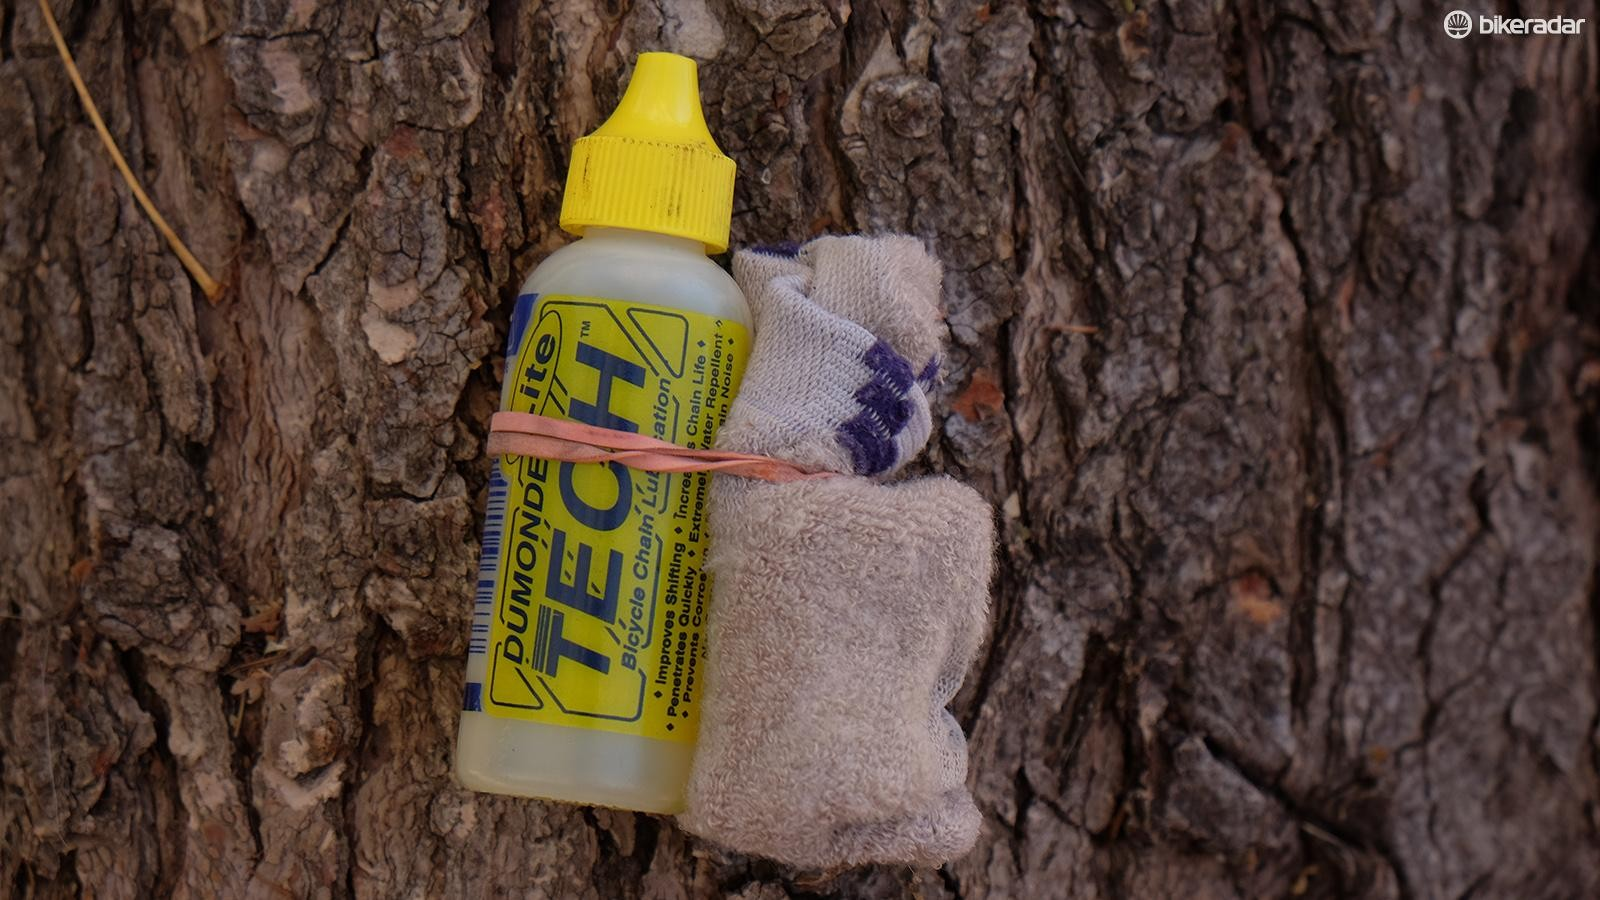 If you're likely to encounter multiple stream crossings or a chance of showers, a small bottle of chain lube with a peice of cloth to clean the chain is a good addition to your kit